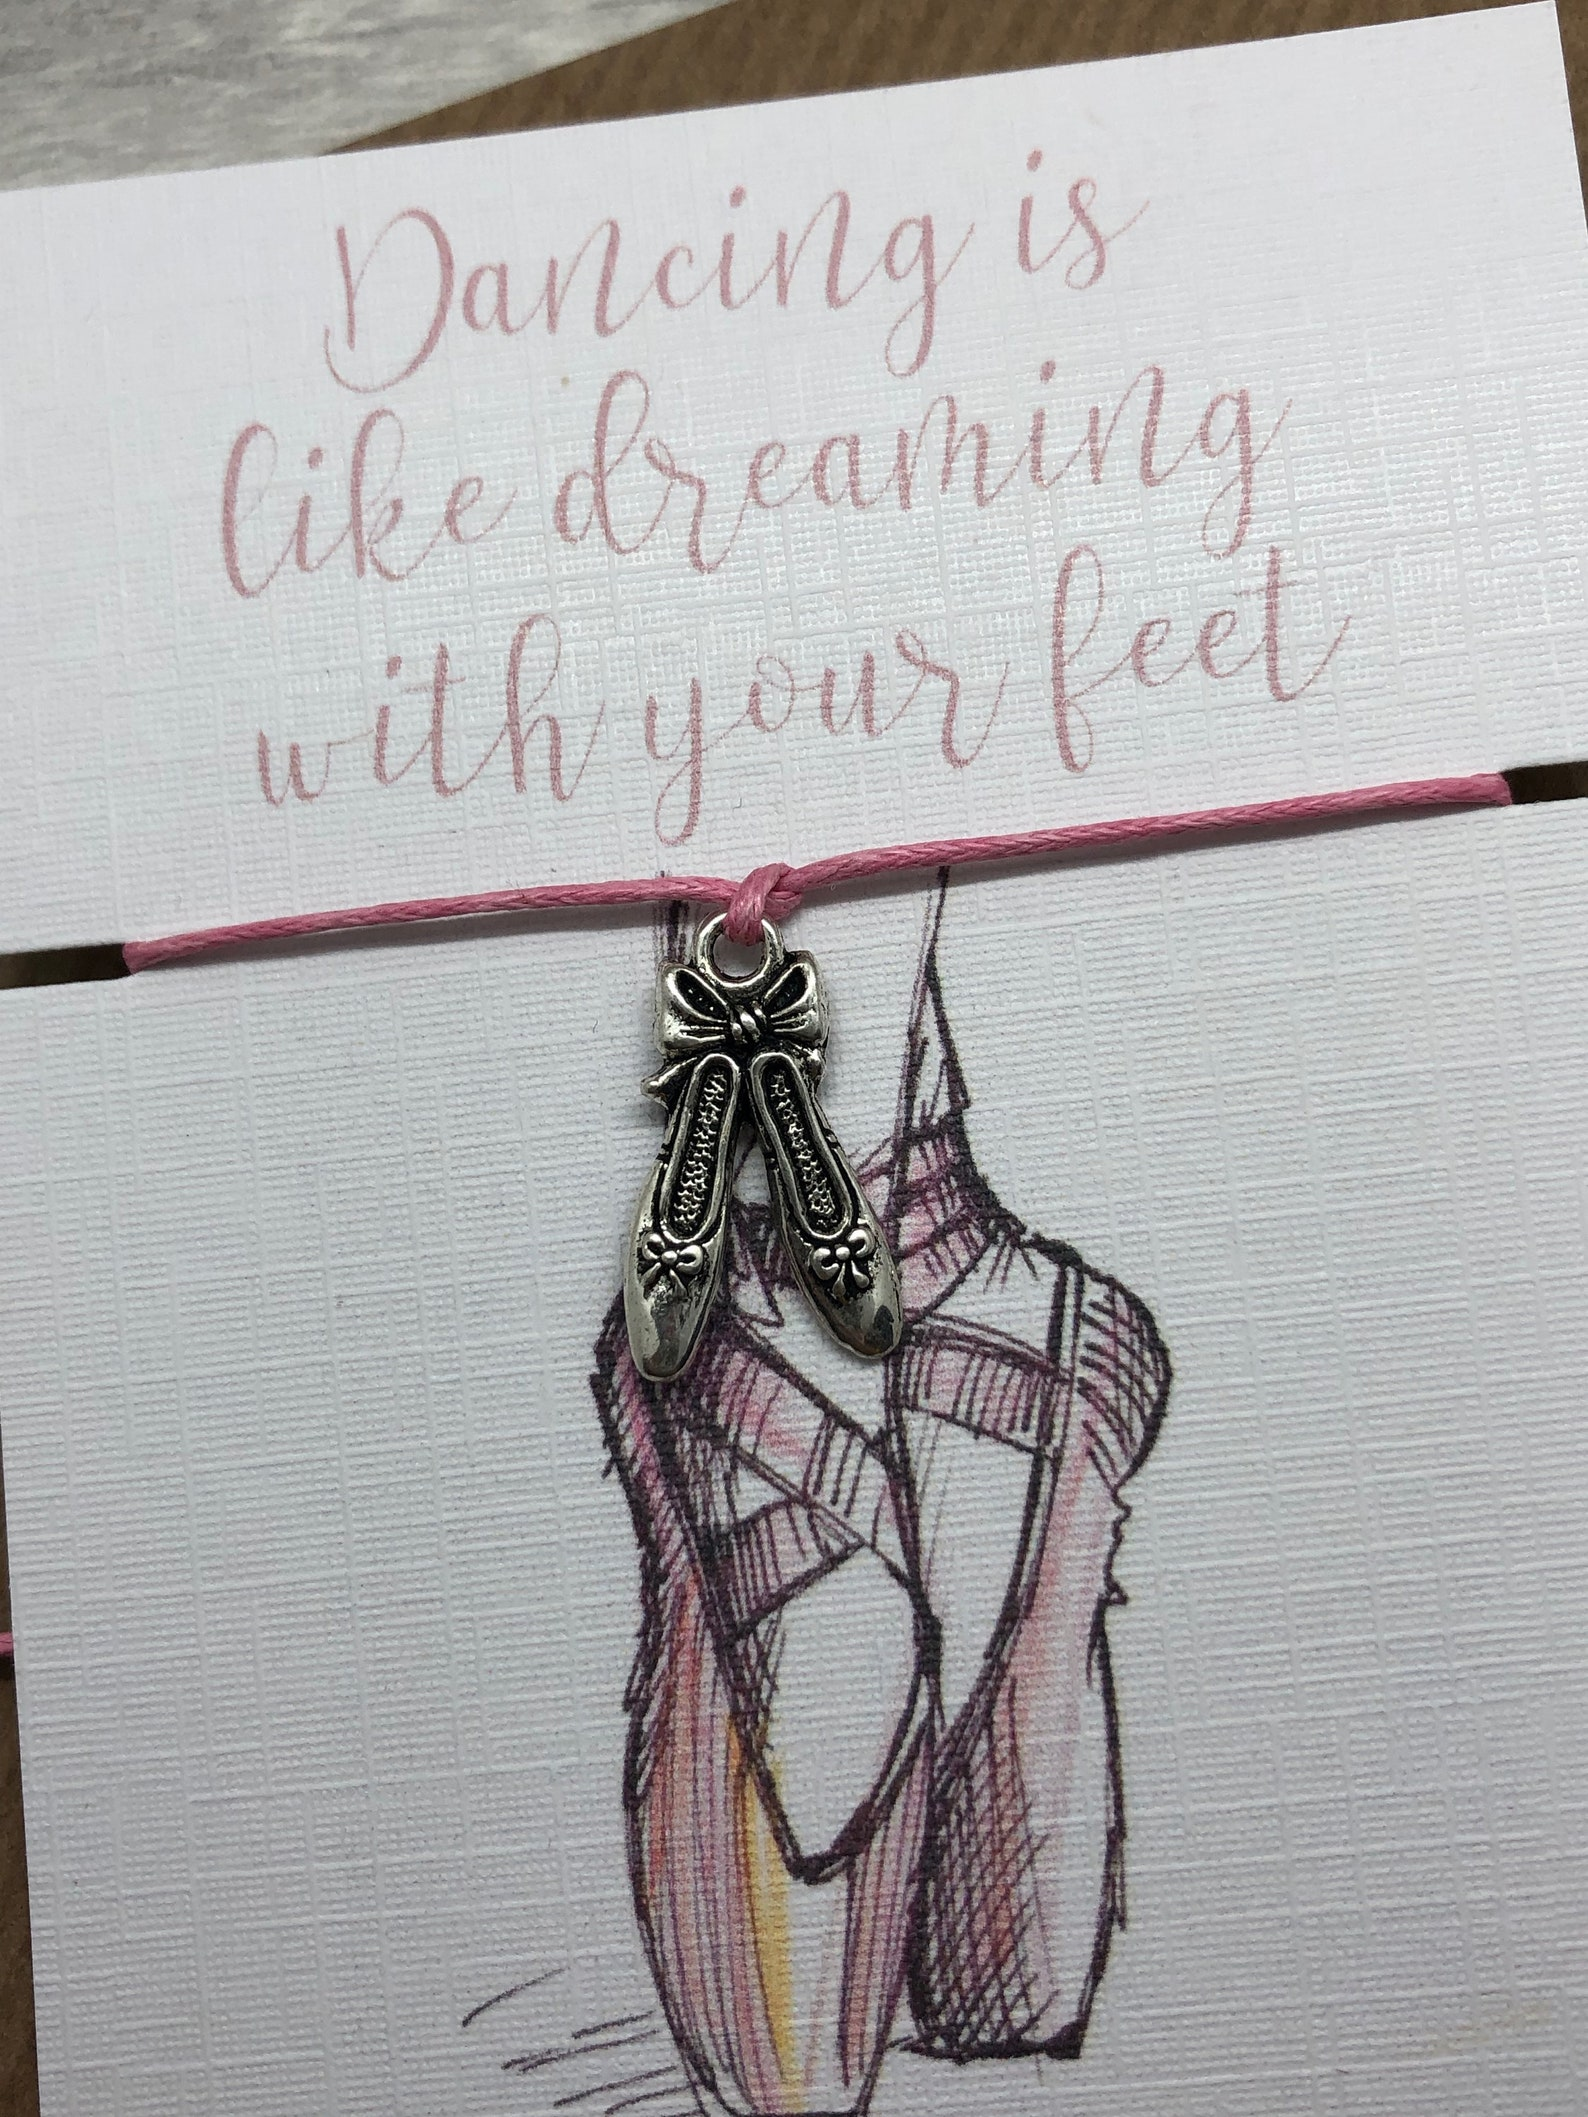 dancer gift, ballet gift ideas, ballet dancer gift, ballerina gift, gift for little girl, gift for dancer.